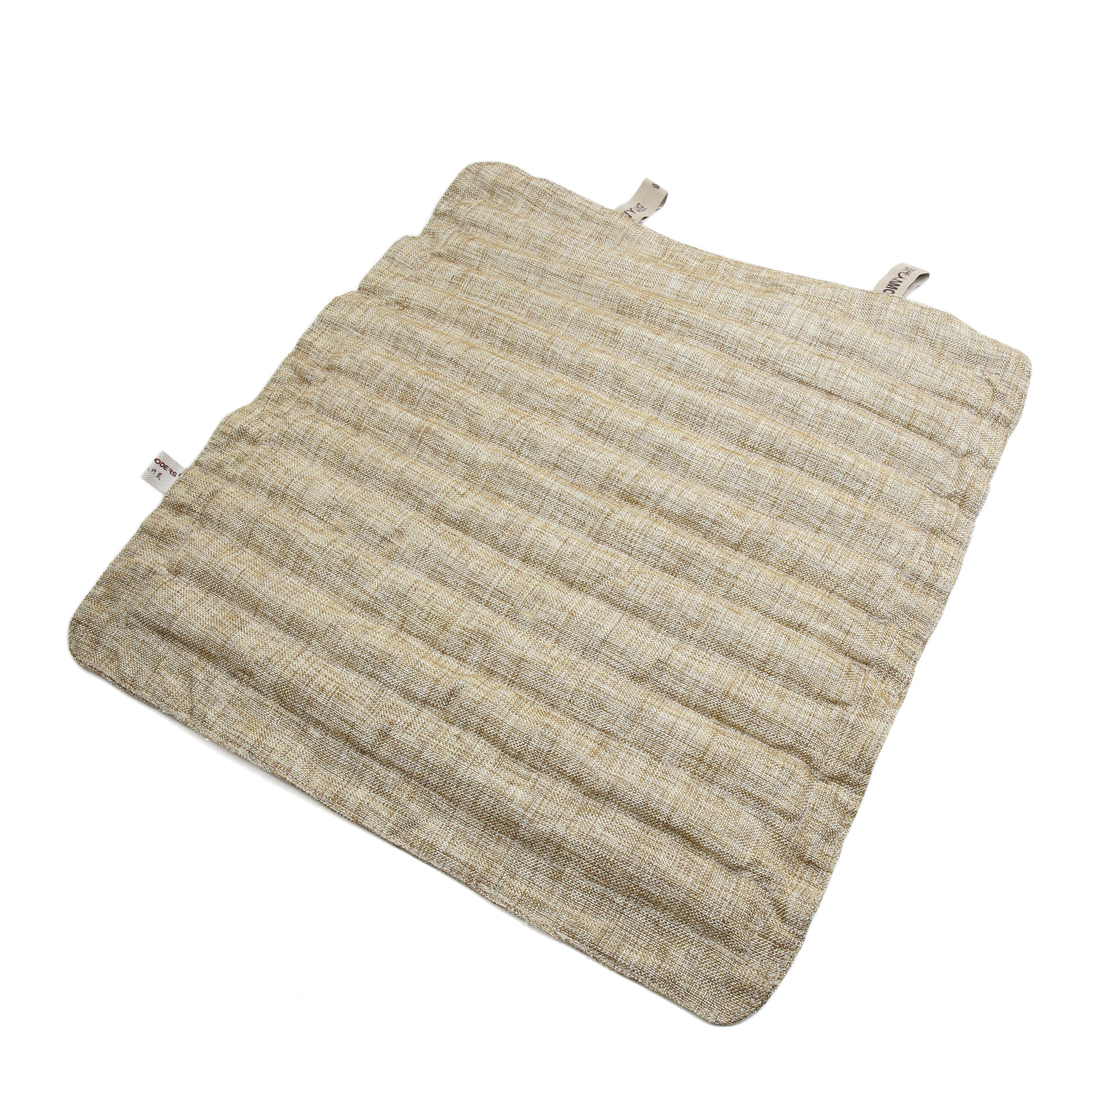 Oxford Cloth Bamboo Charcoal Filled Car Home Seat Cushion Cover Pad Mat Beige